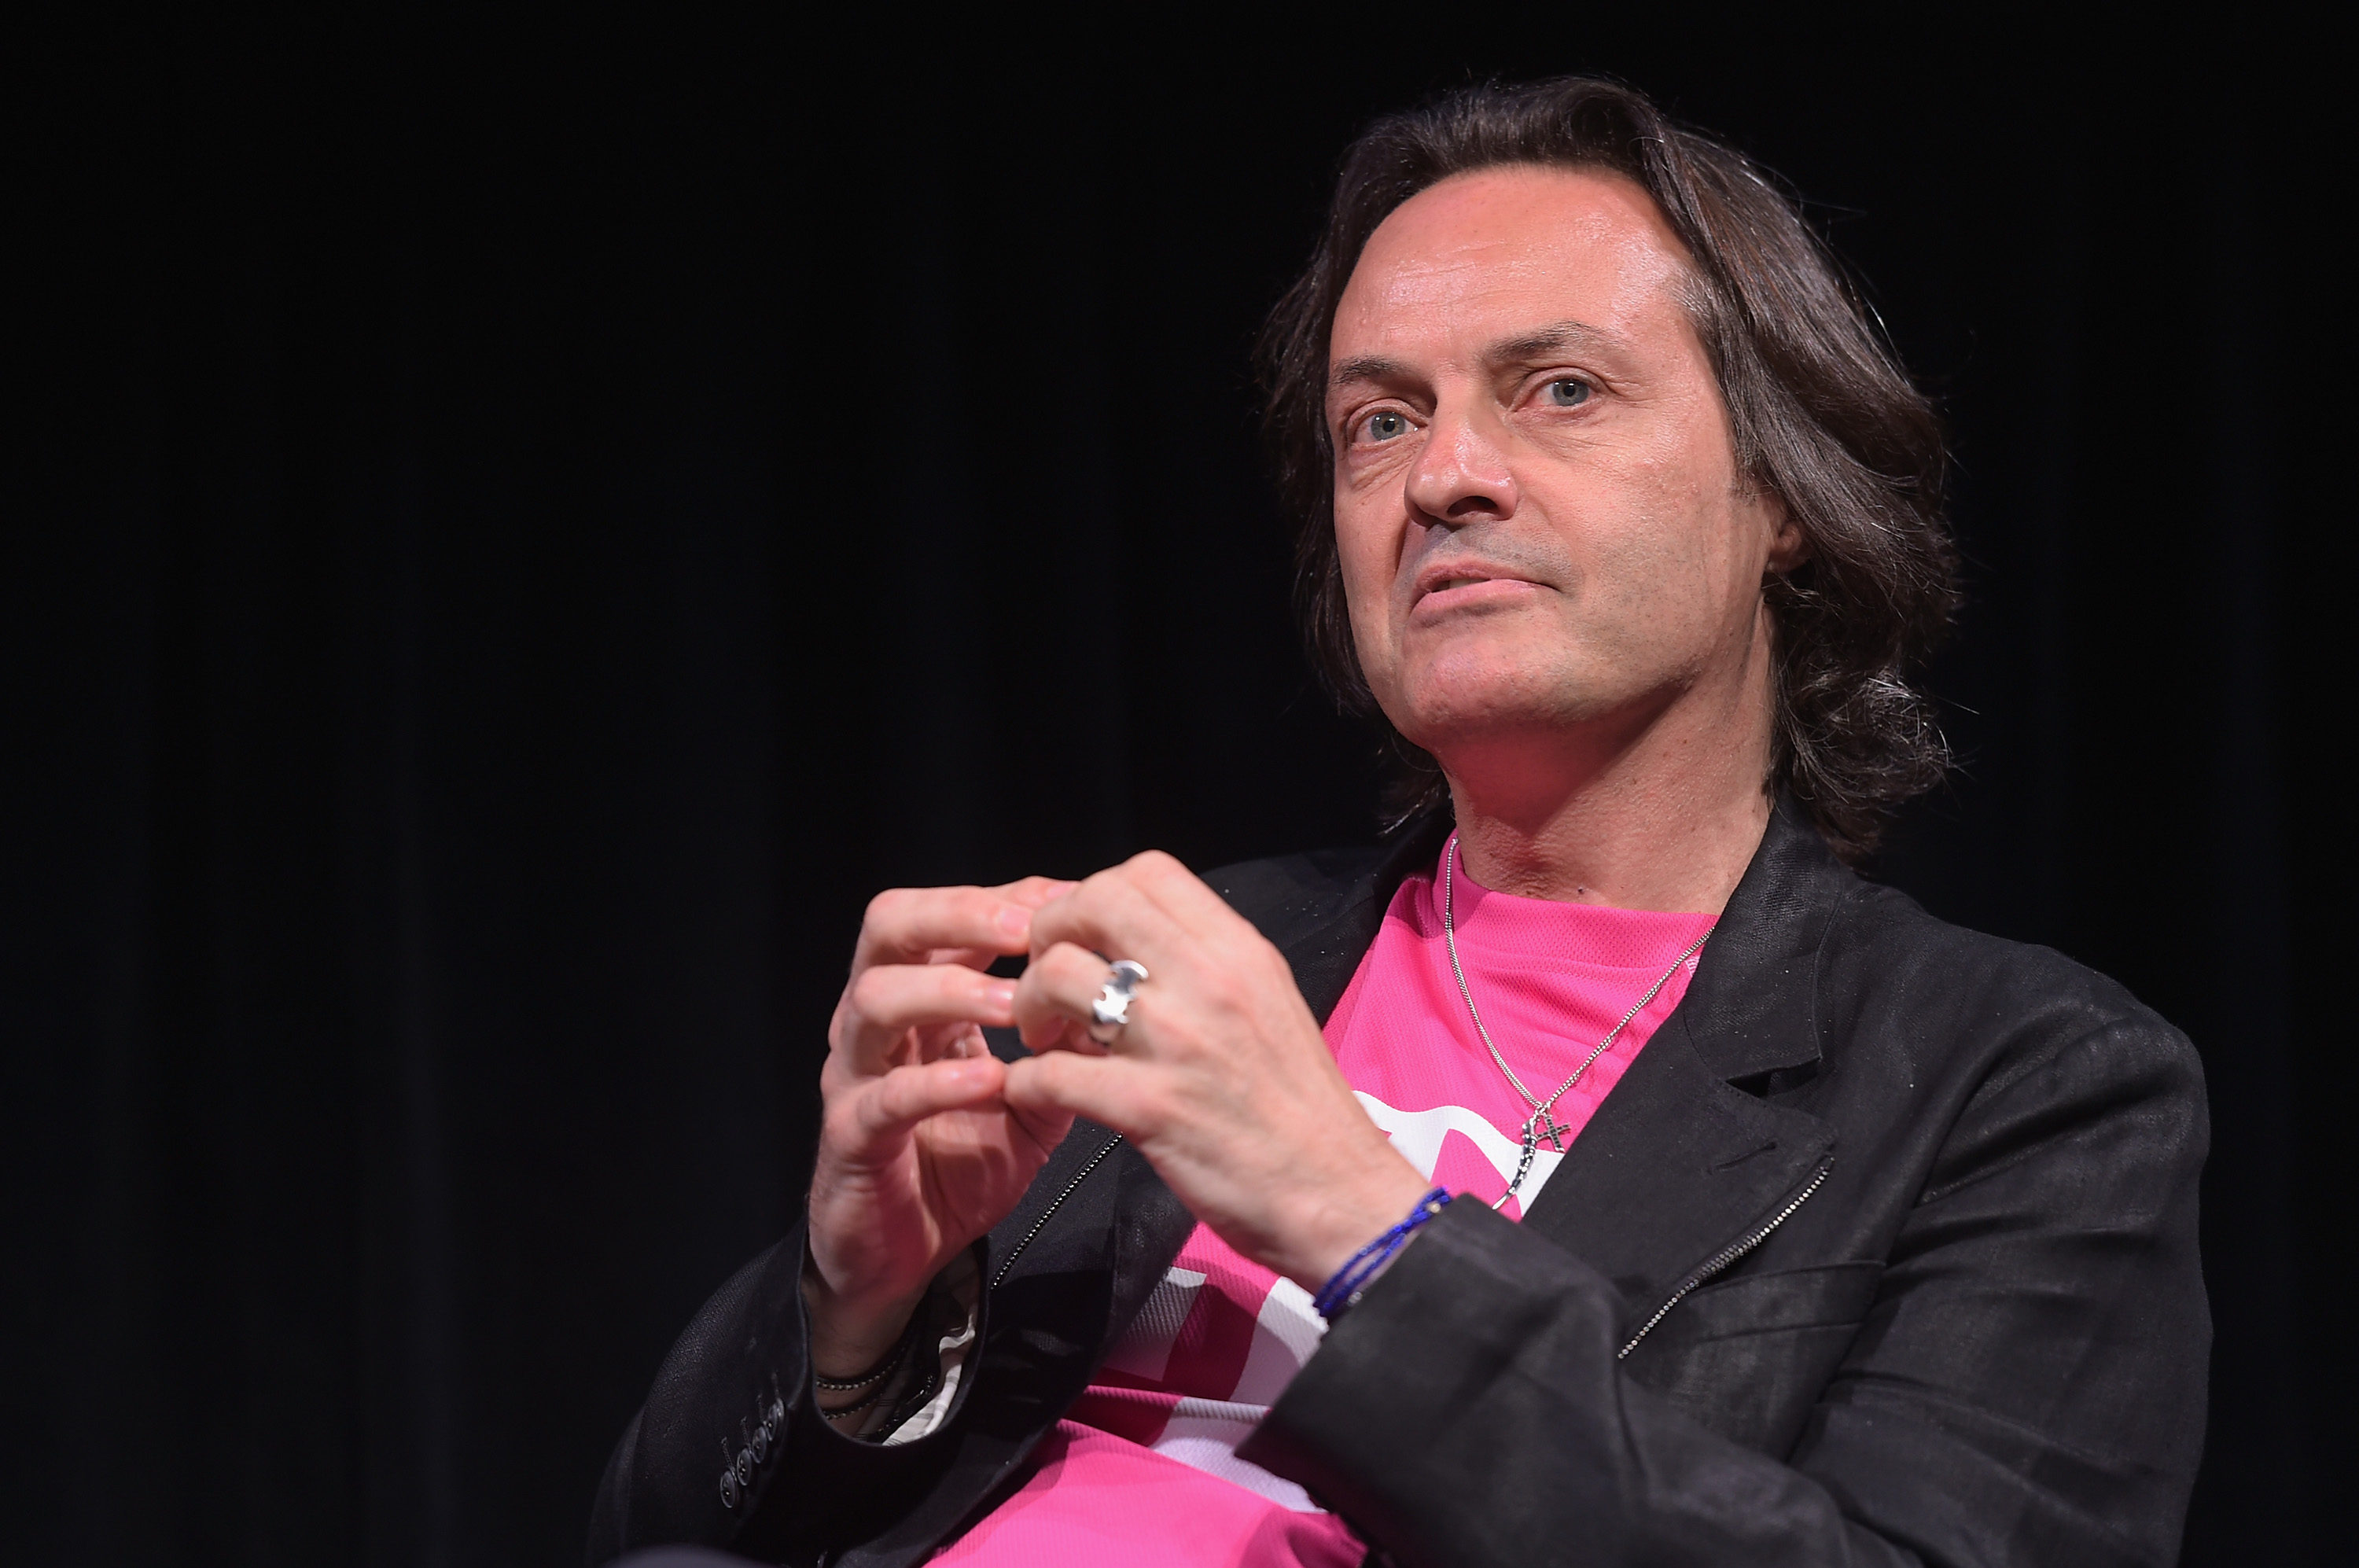 T-Mobile CEO/Executive Producer John Legere takes part in a Q&A on July 15, 2014 in New York City.